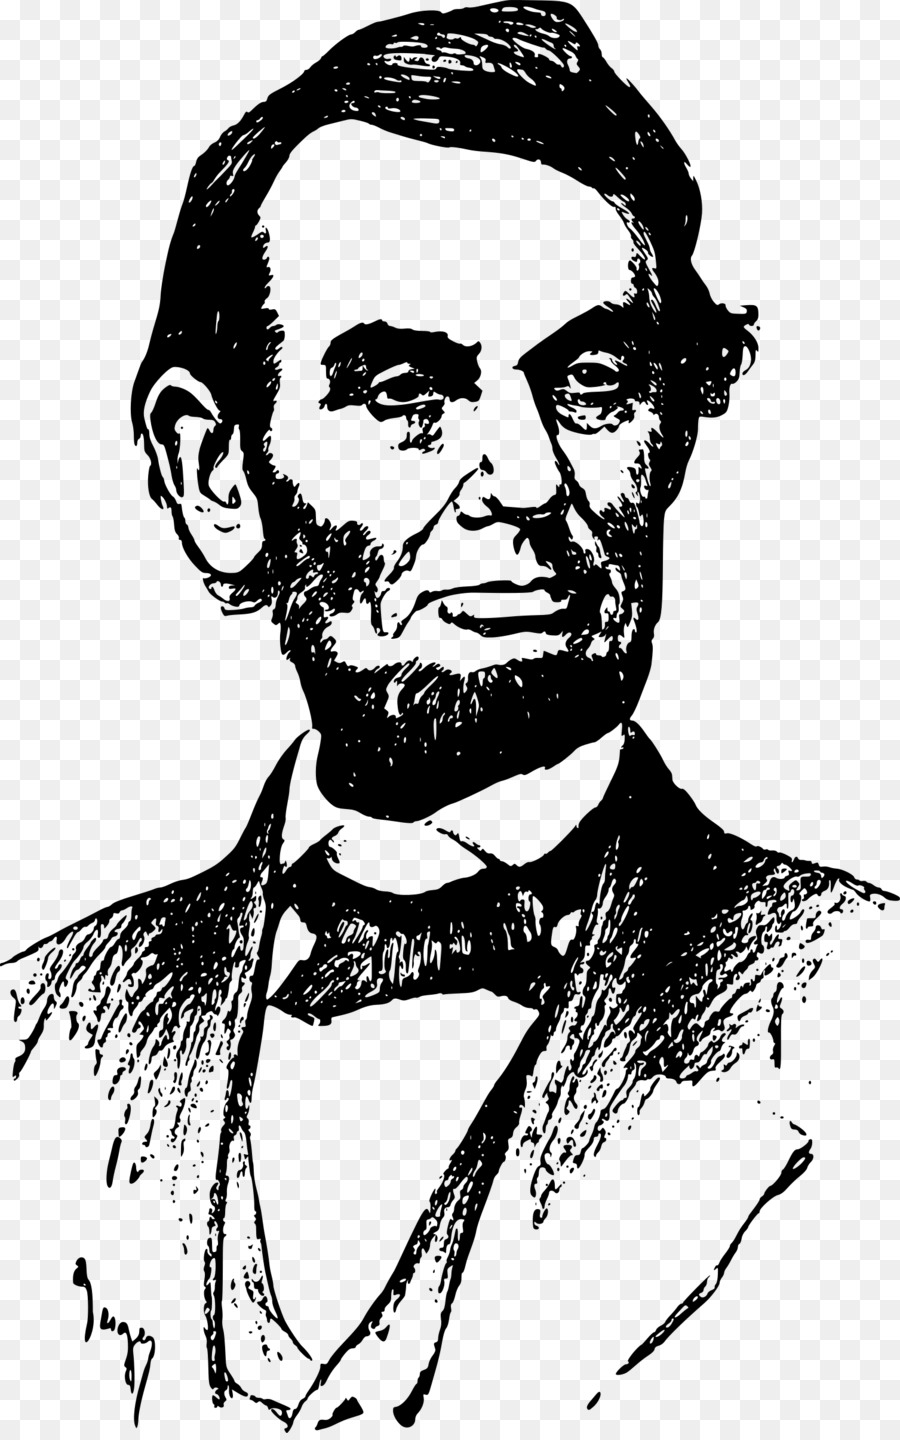 abraham lincoln lincoln memorial president of the united states clip